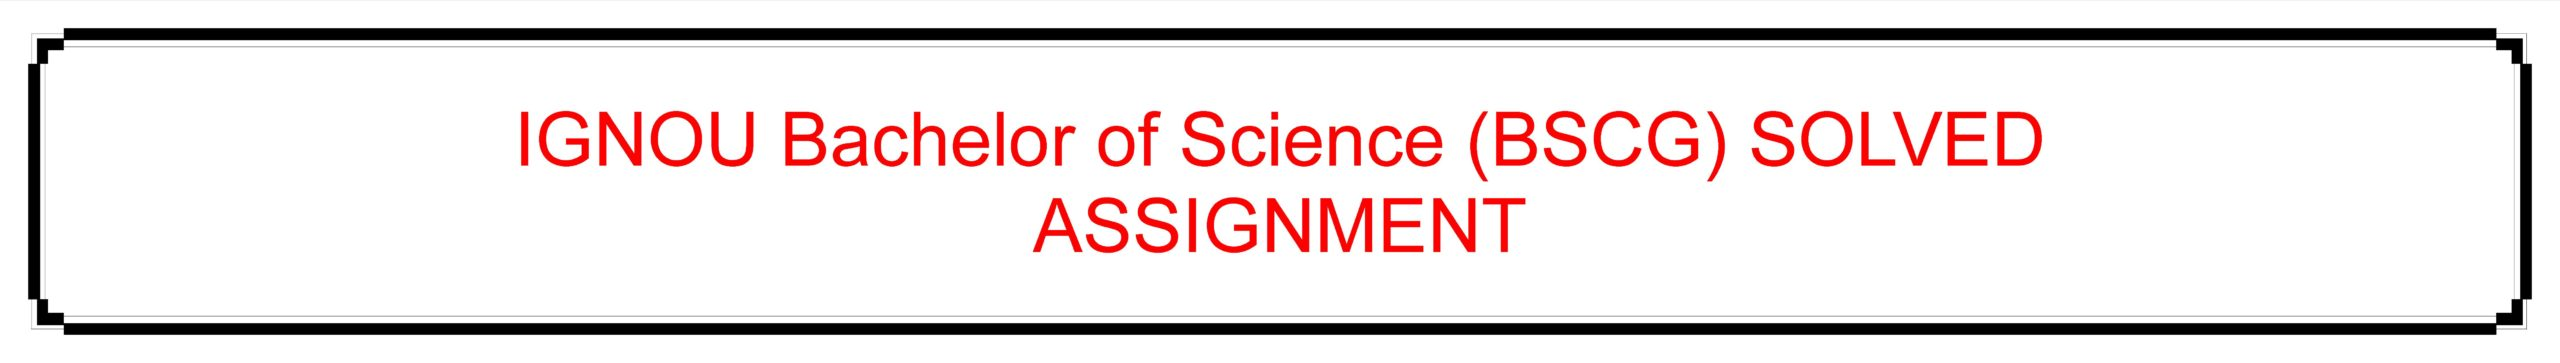 IGNOU Bachelor of Science (BSCG) SOLVED ASSIGNMENT